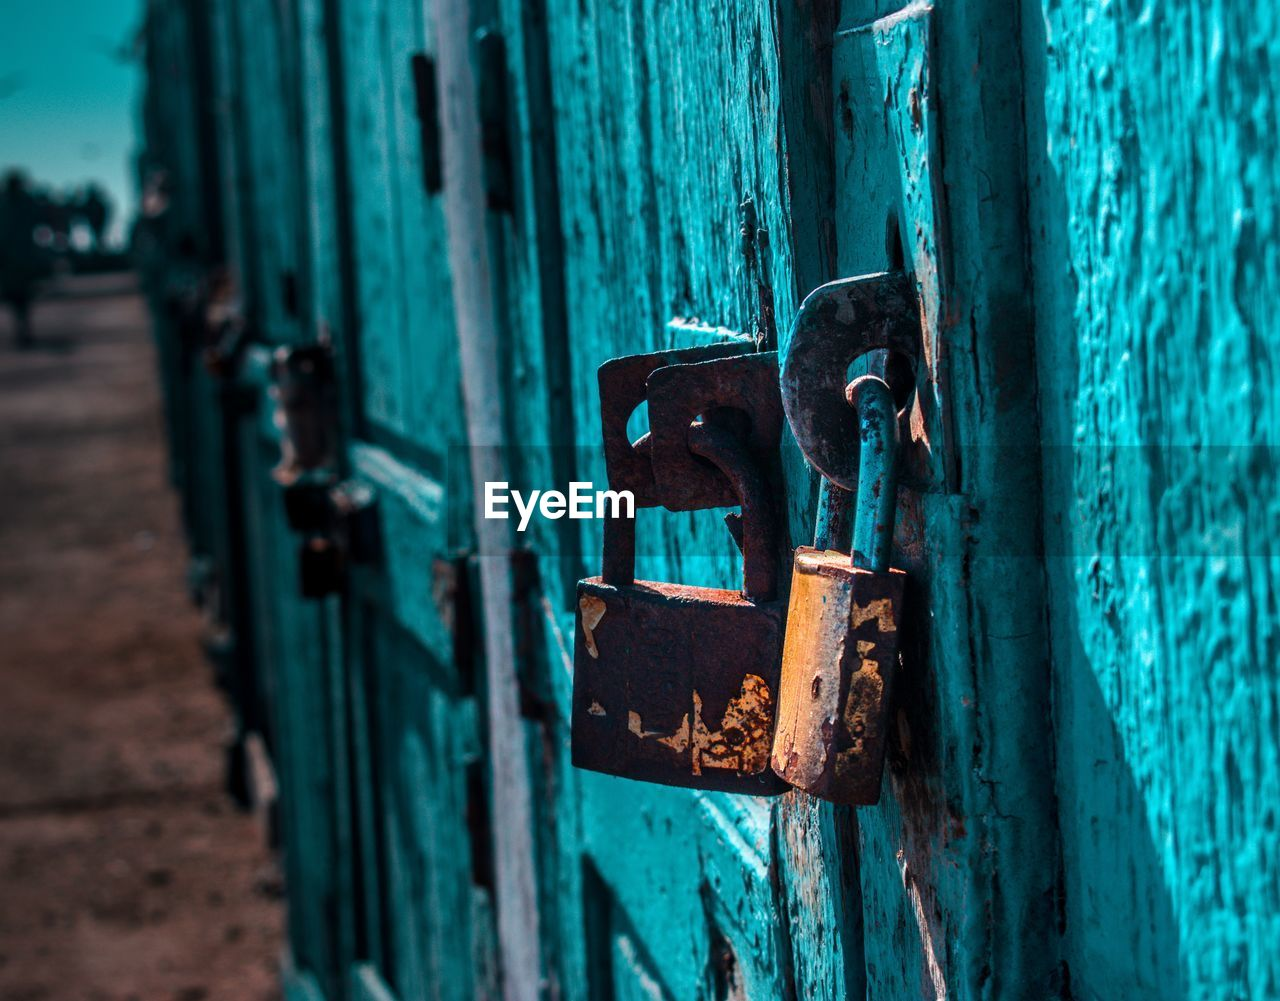 Close-Up Of Rusty Padlocks On Turquoise Doors